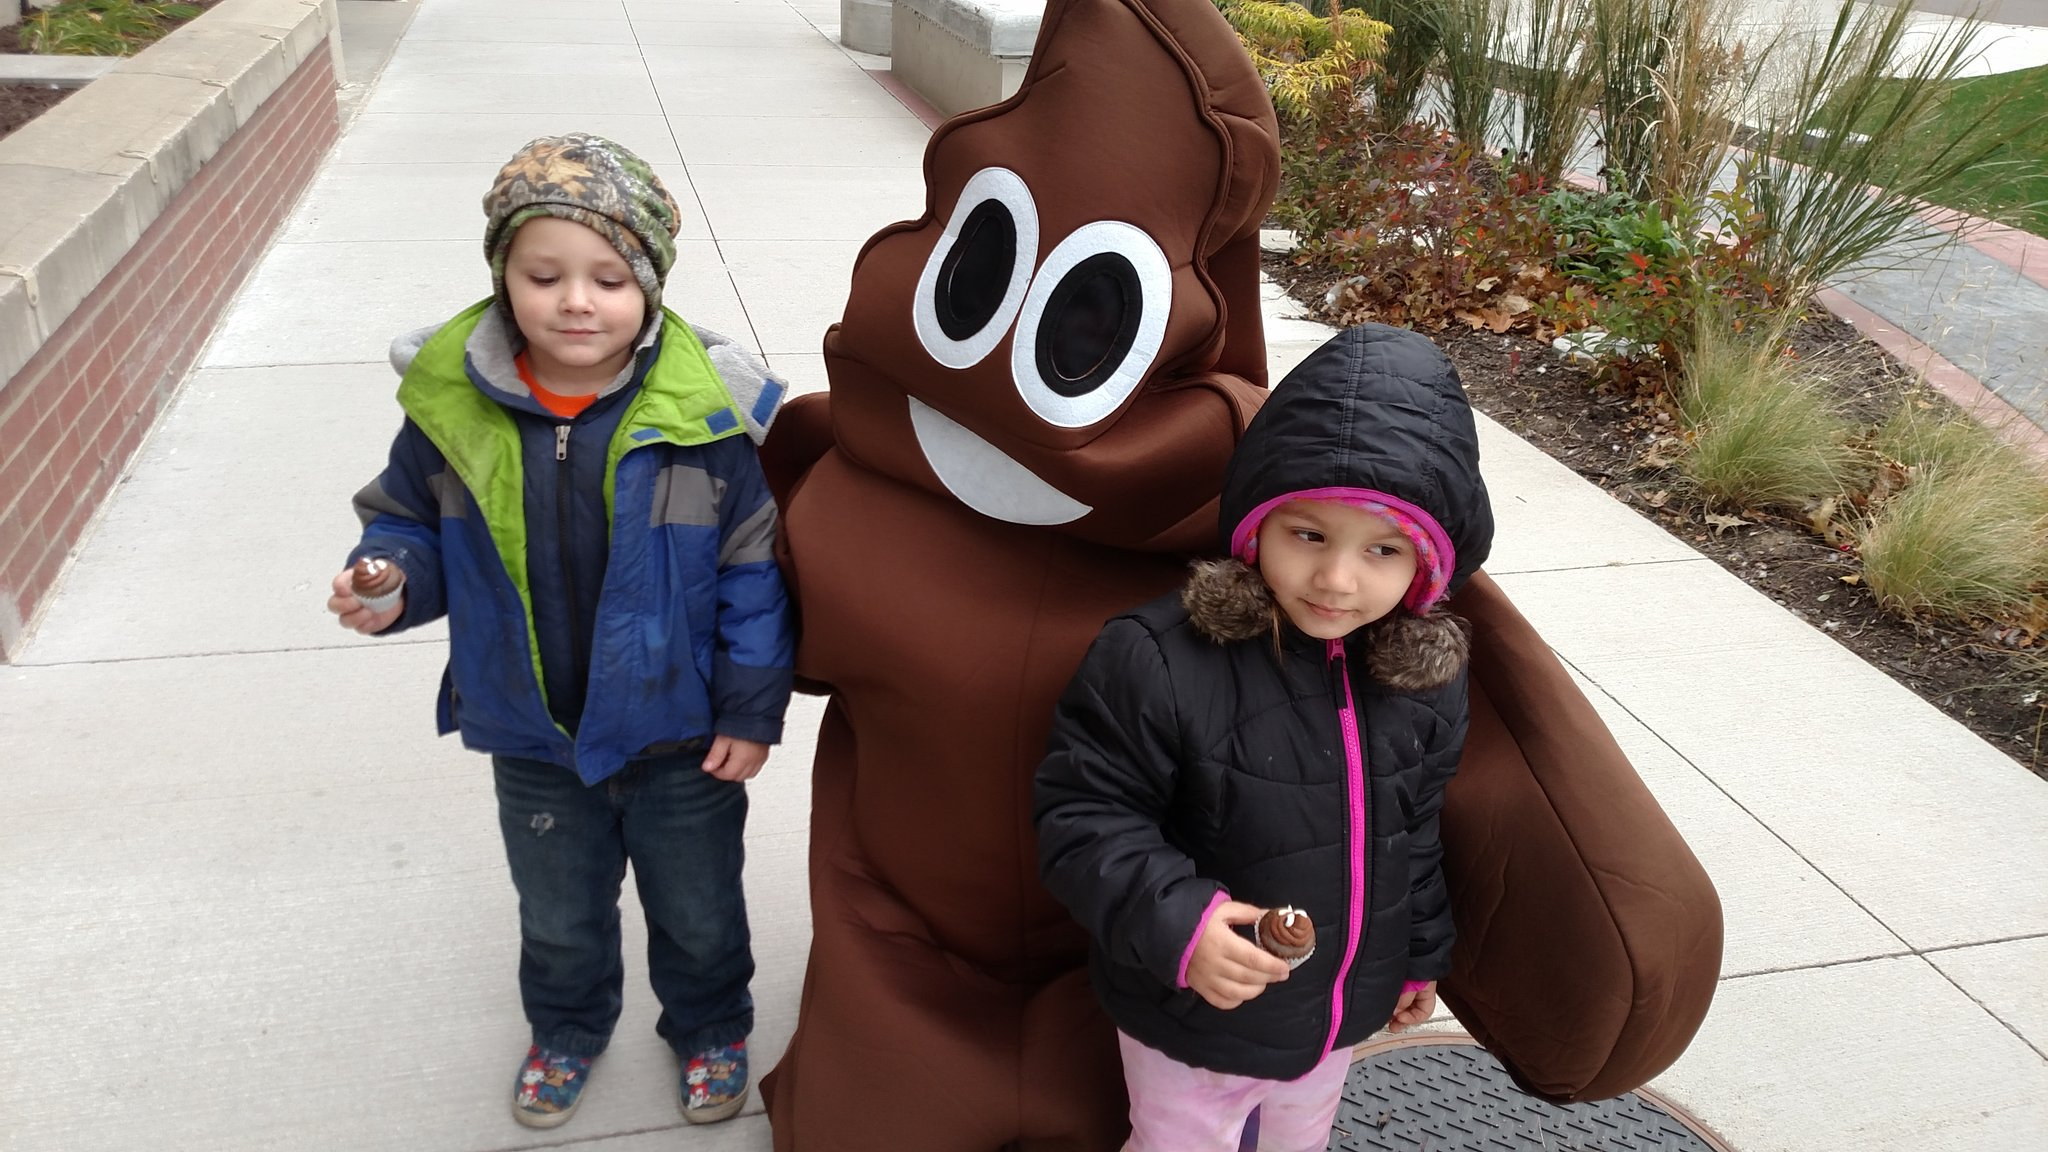 Had a couple kids chase after #pooberta for a pic and cupcakes! #adorable #worldtoiletday #topeka https://t.co/v19iEDN8J4